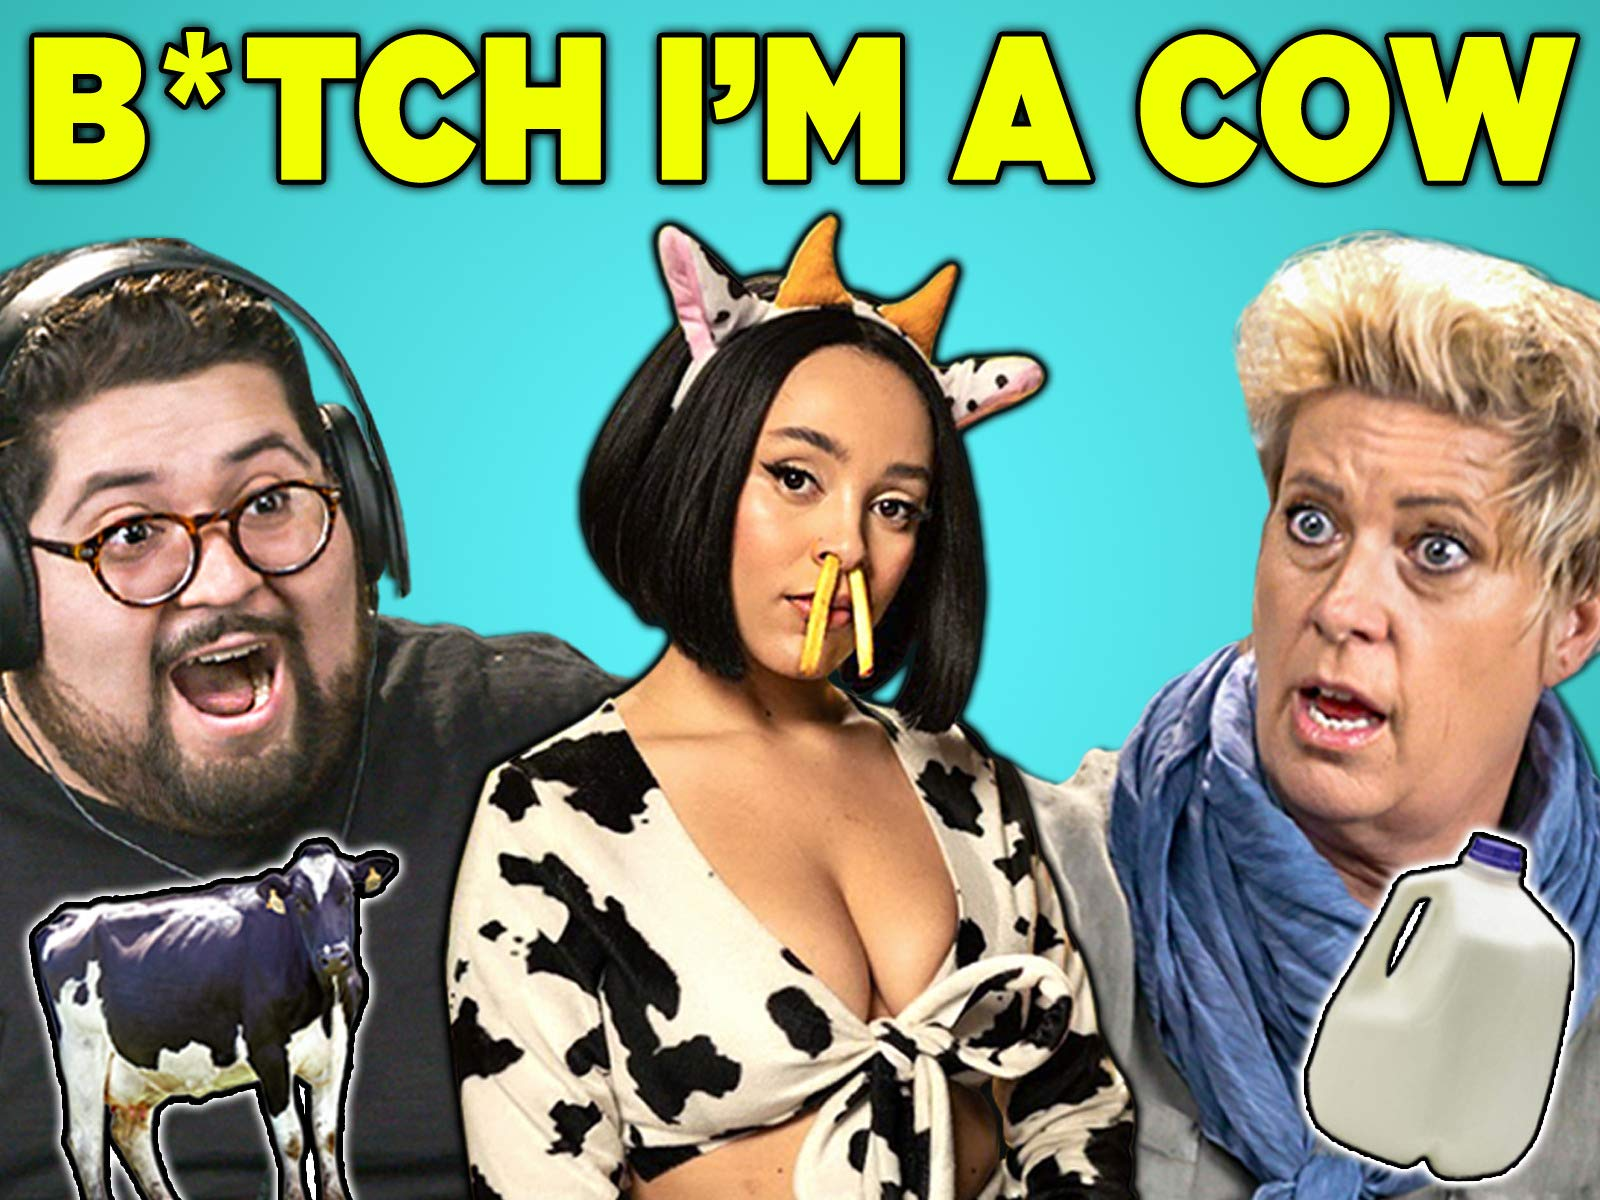 Watch Adults React | Prime Video